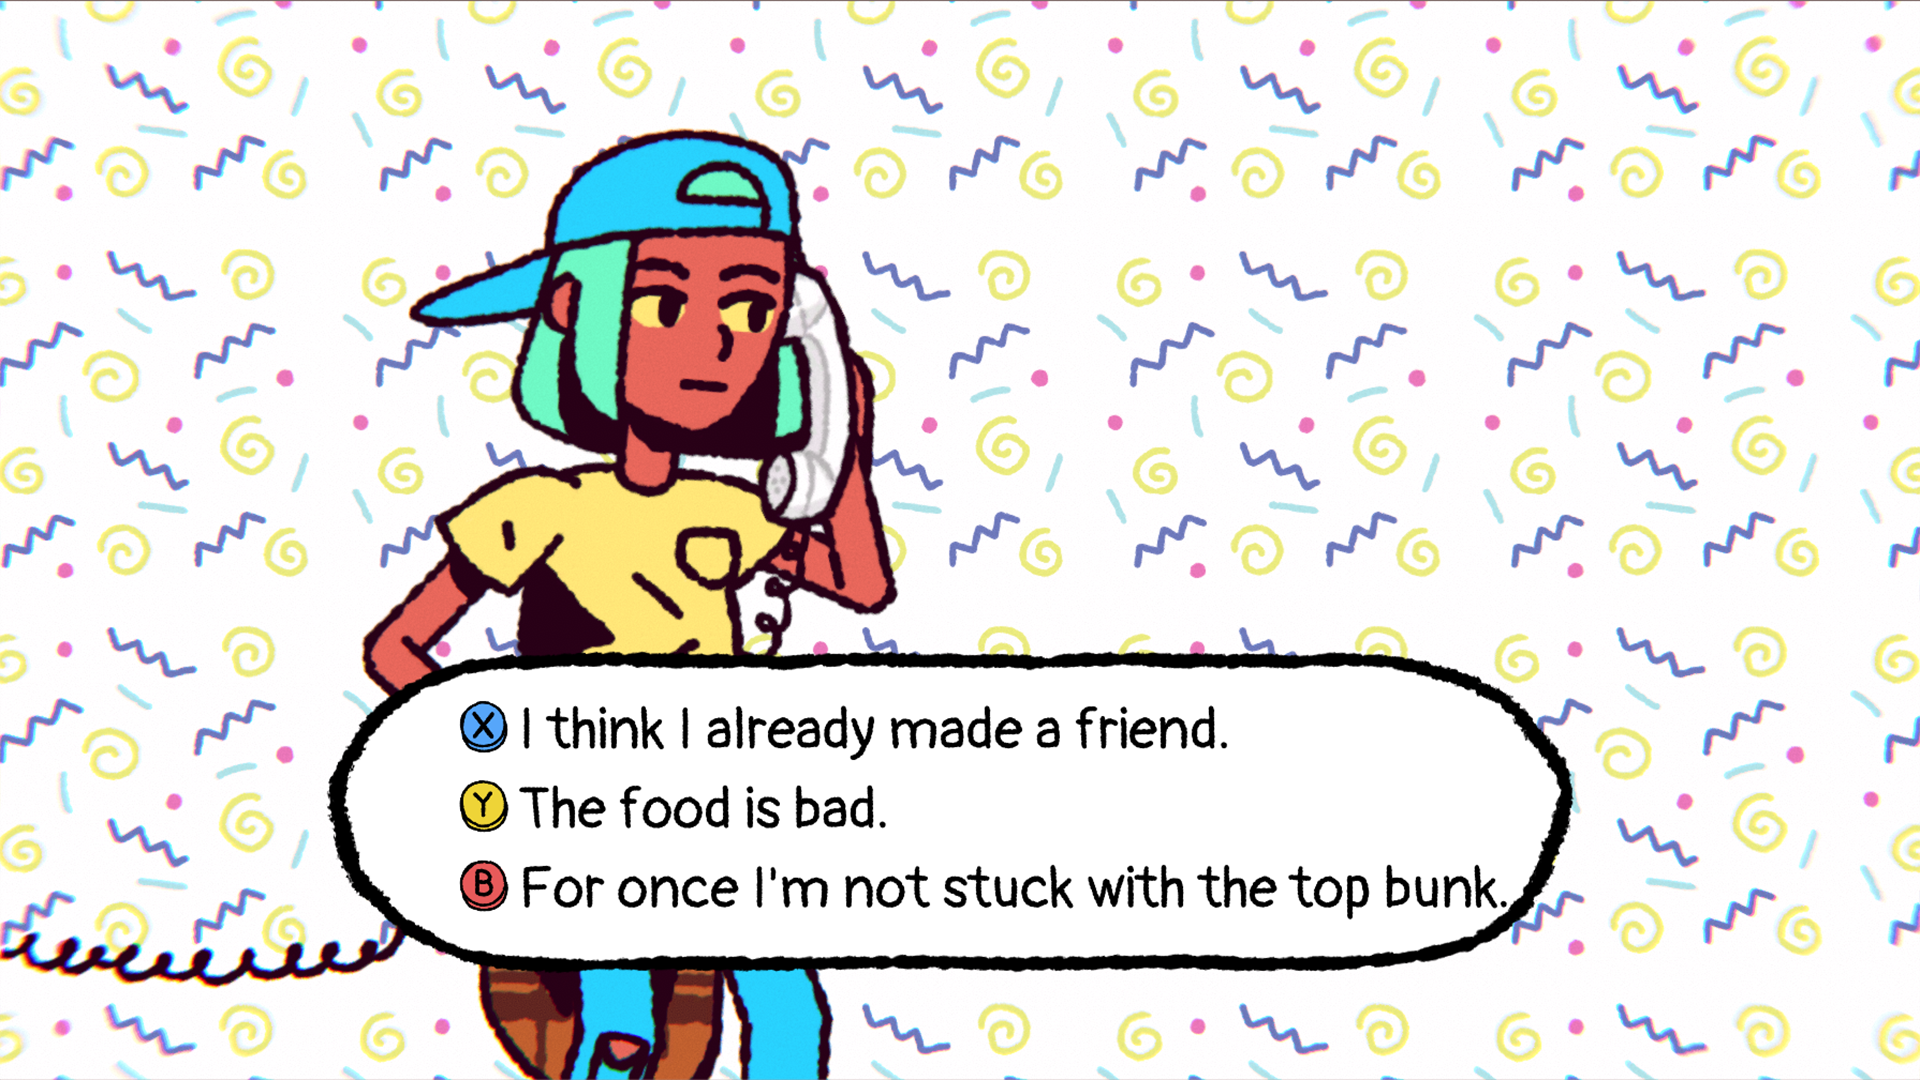 big con dialogue options, I already made a friend, the food is bad, and for once I'm not stuck with the top bunk